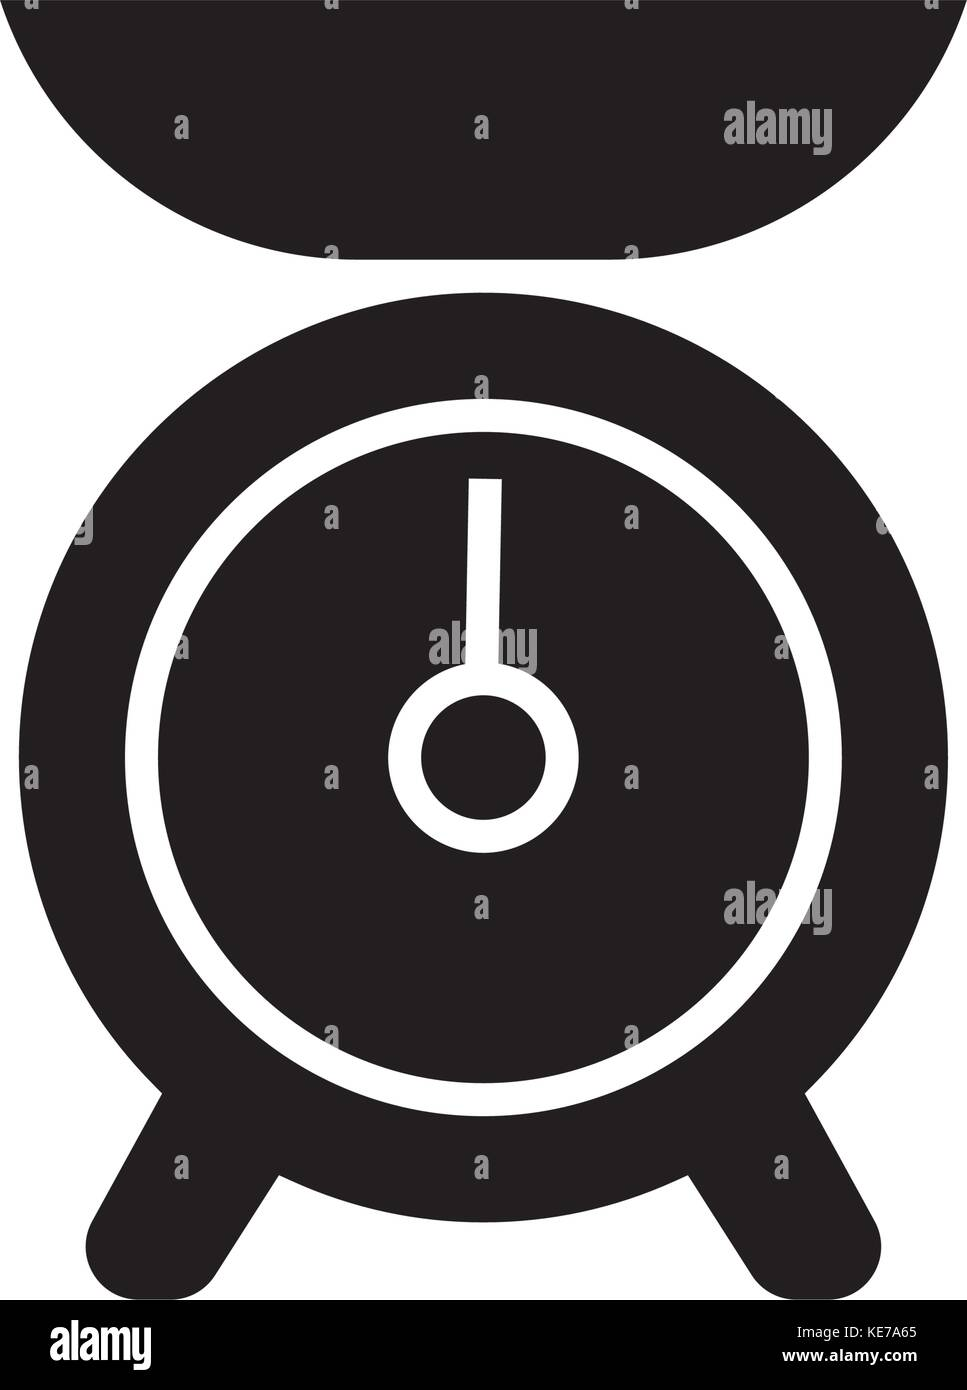 weight kitchen icon, vector illustration, black sign on isolated background - Stock Image